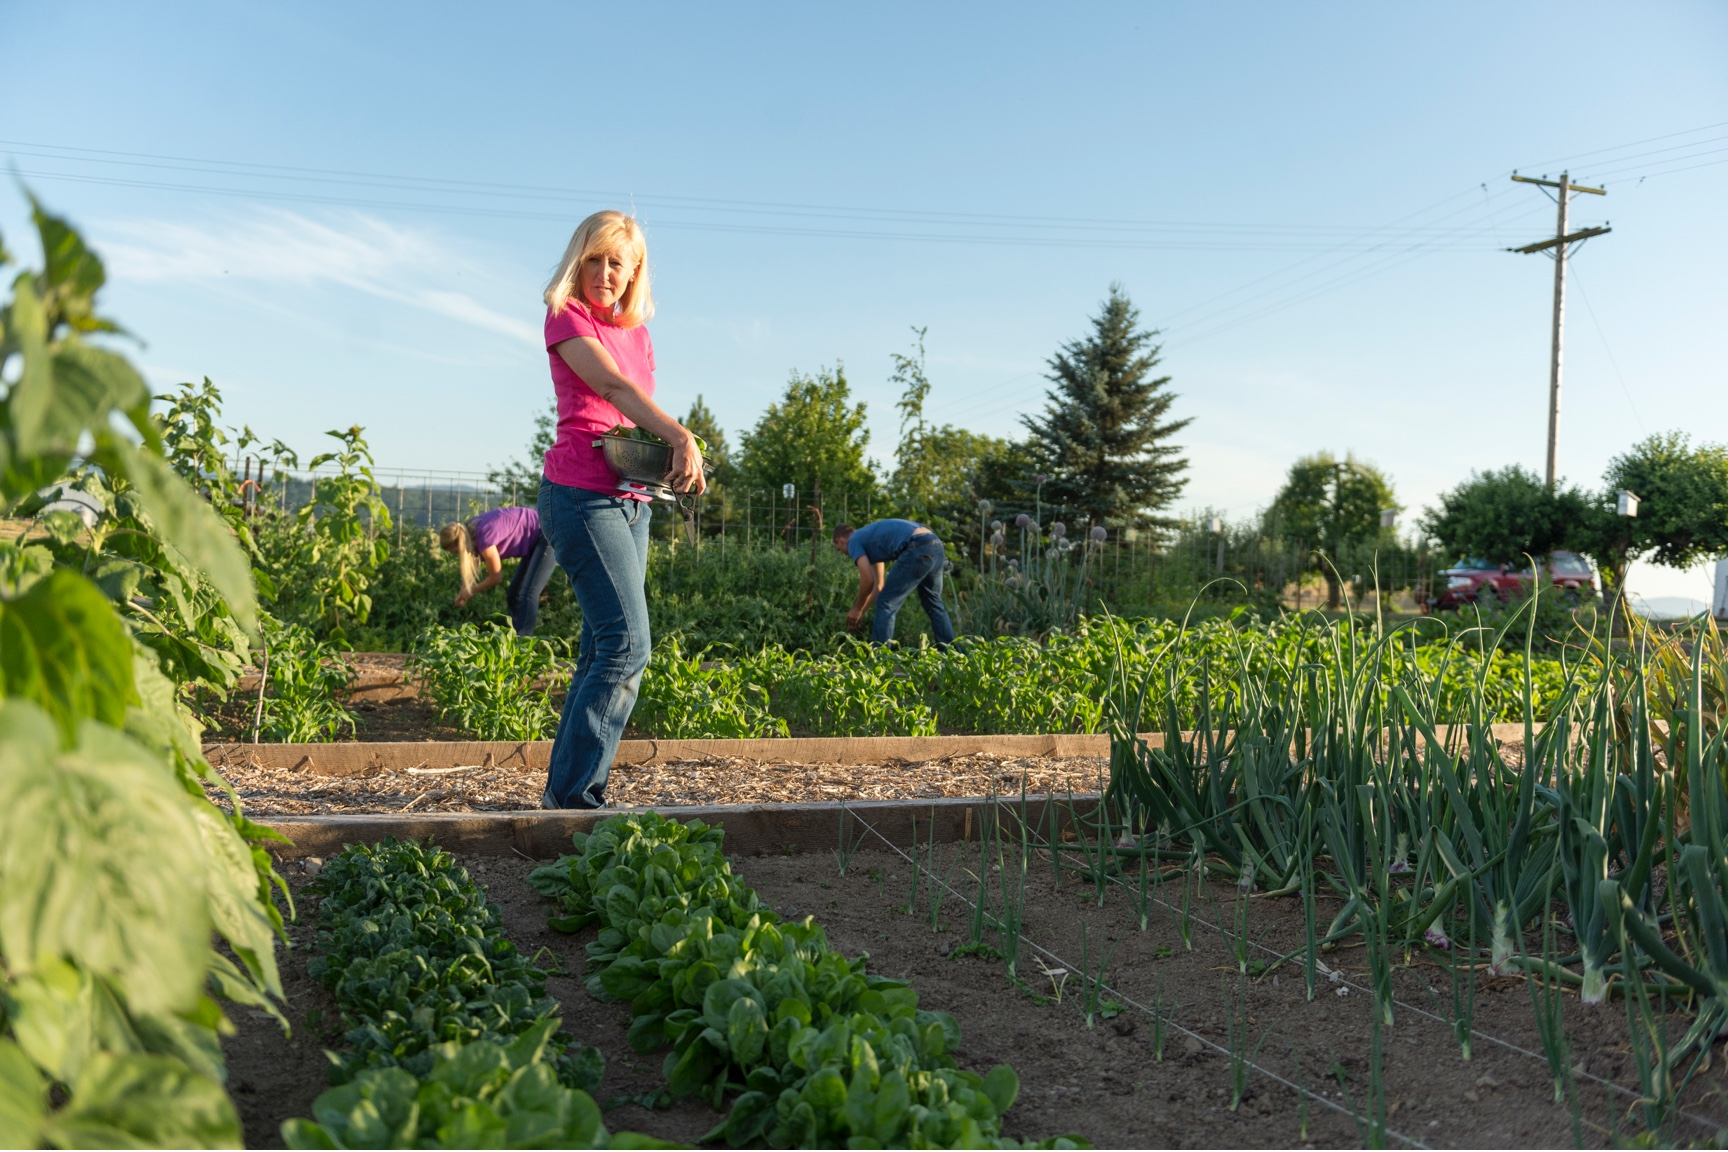 Juli Bansen overlooks her bountiful farm garden of spinach, onions, and more while her children weed in the background.